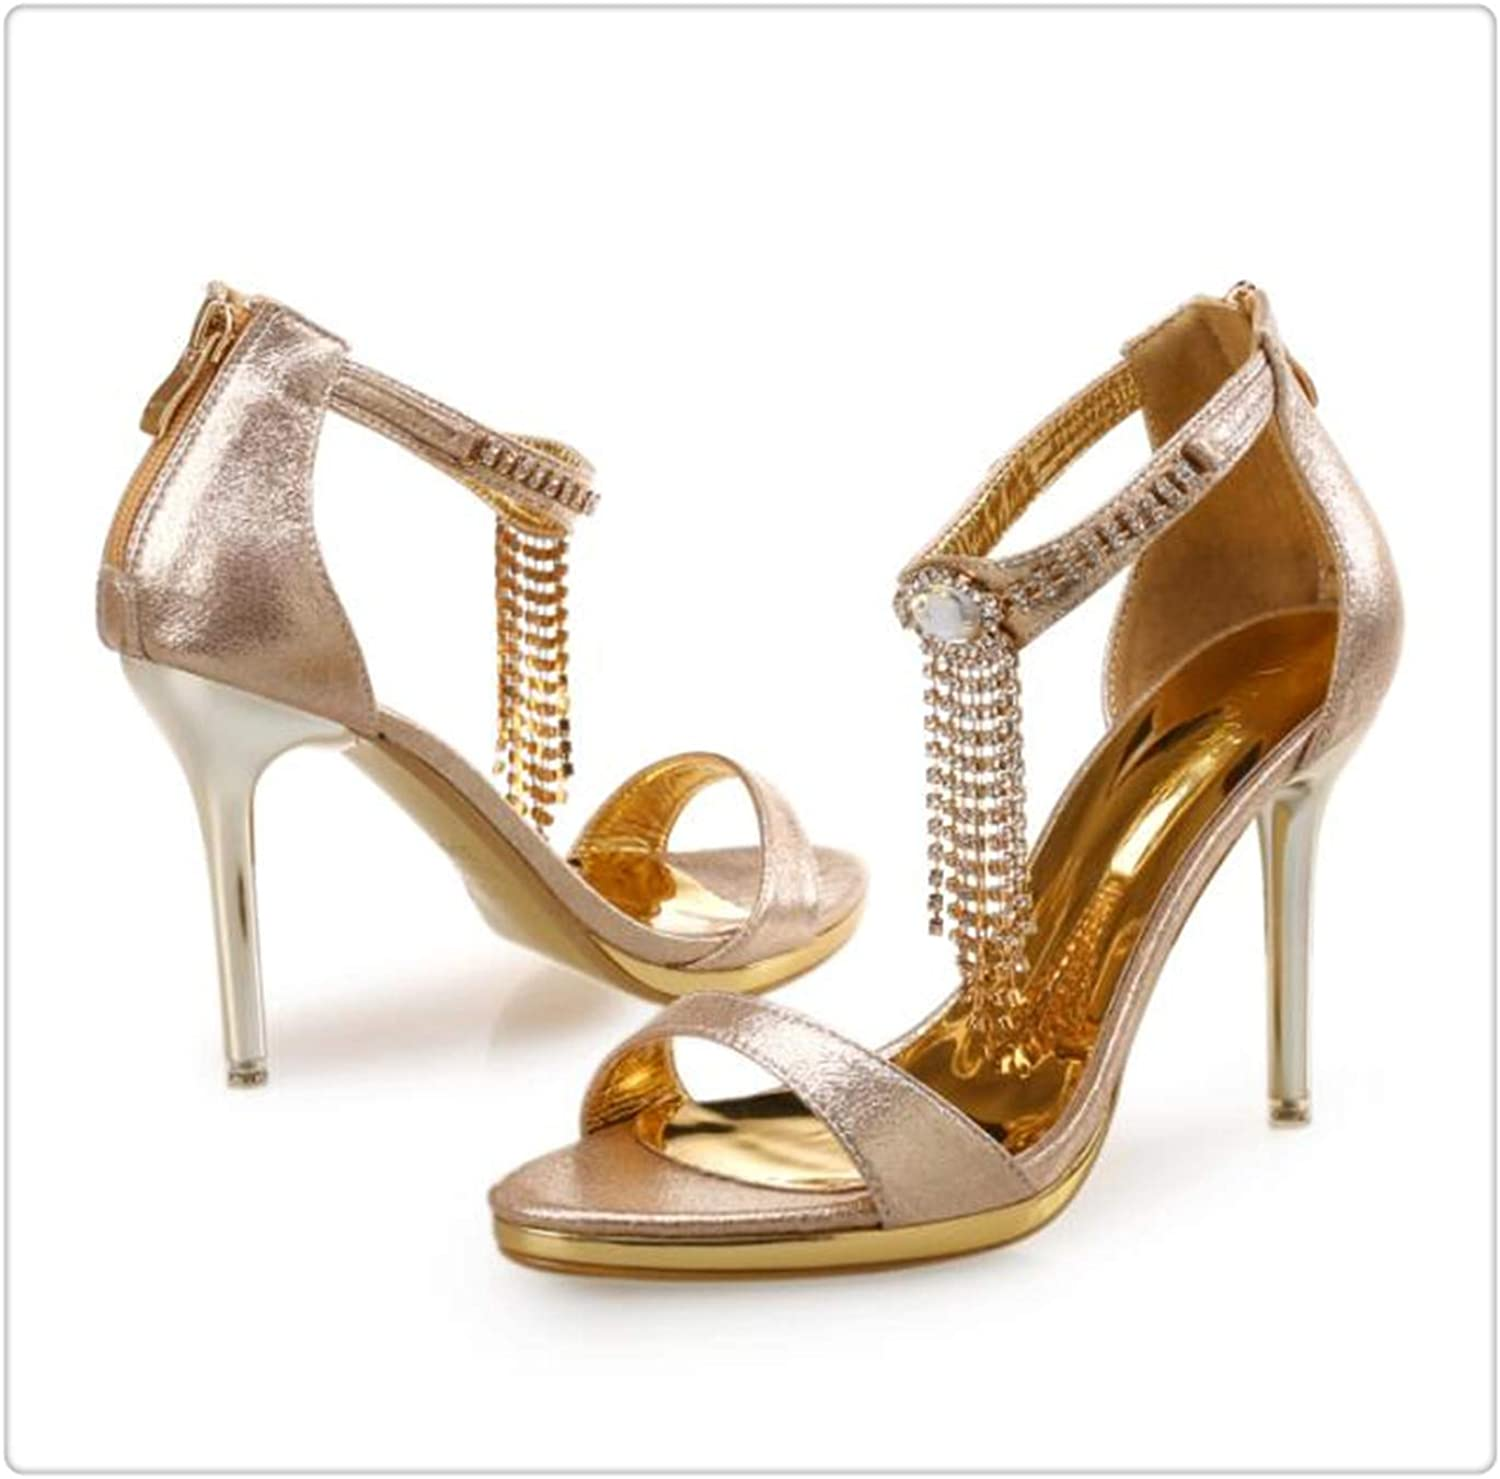 BIONGTY& New 10.5cm Metal Thin Heel Fashion shoes Summer High Heel Woman Party Sandals